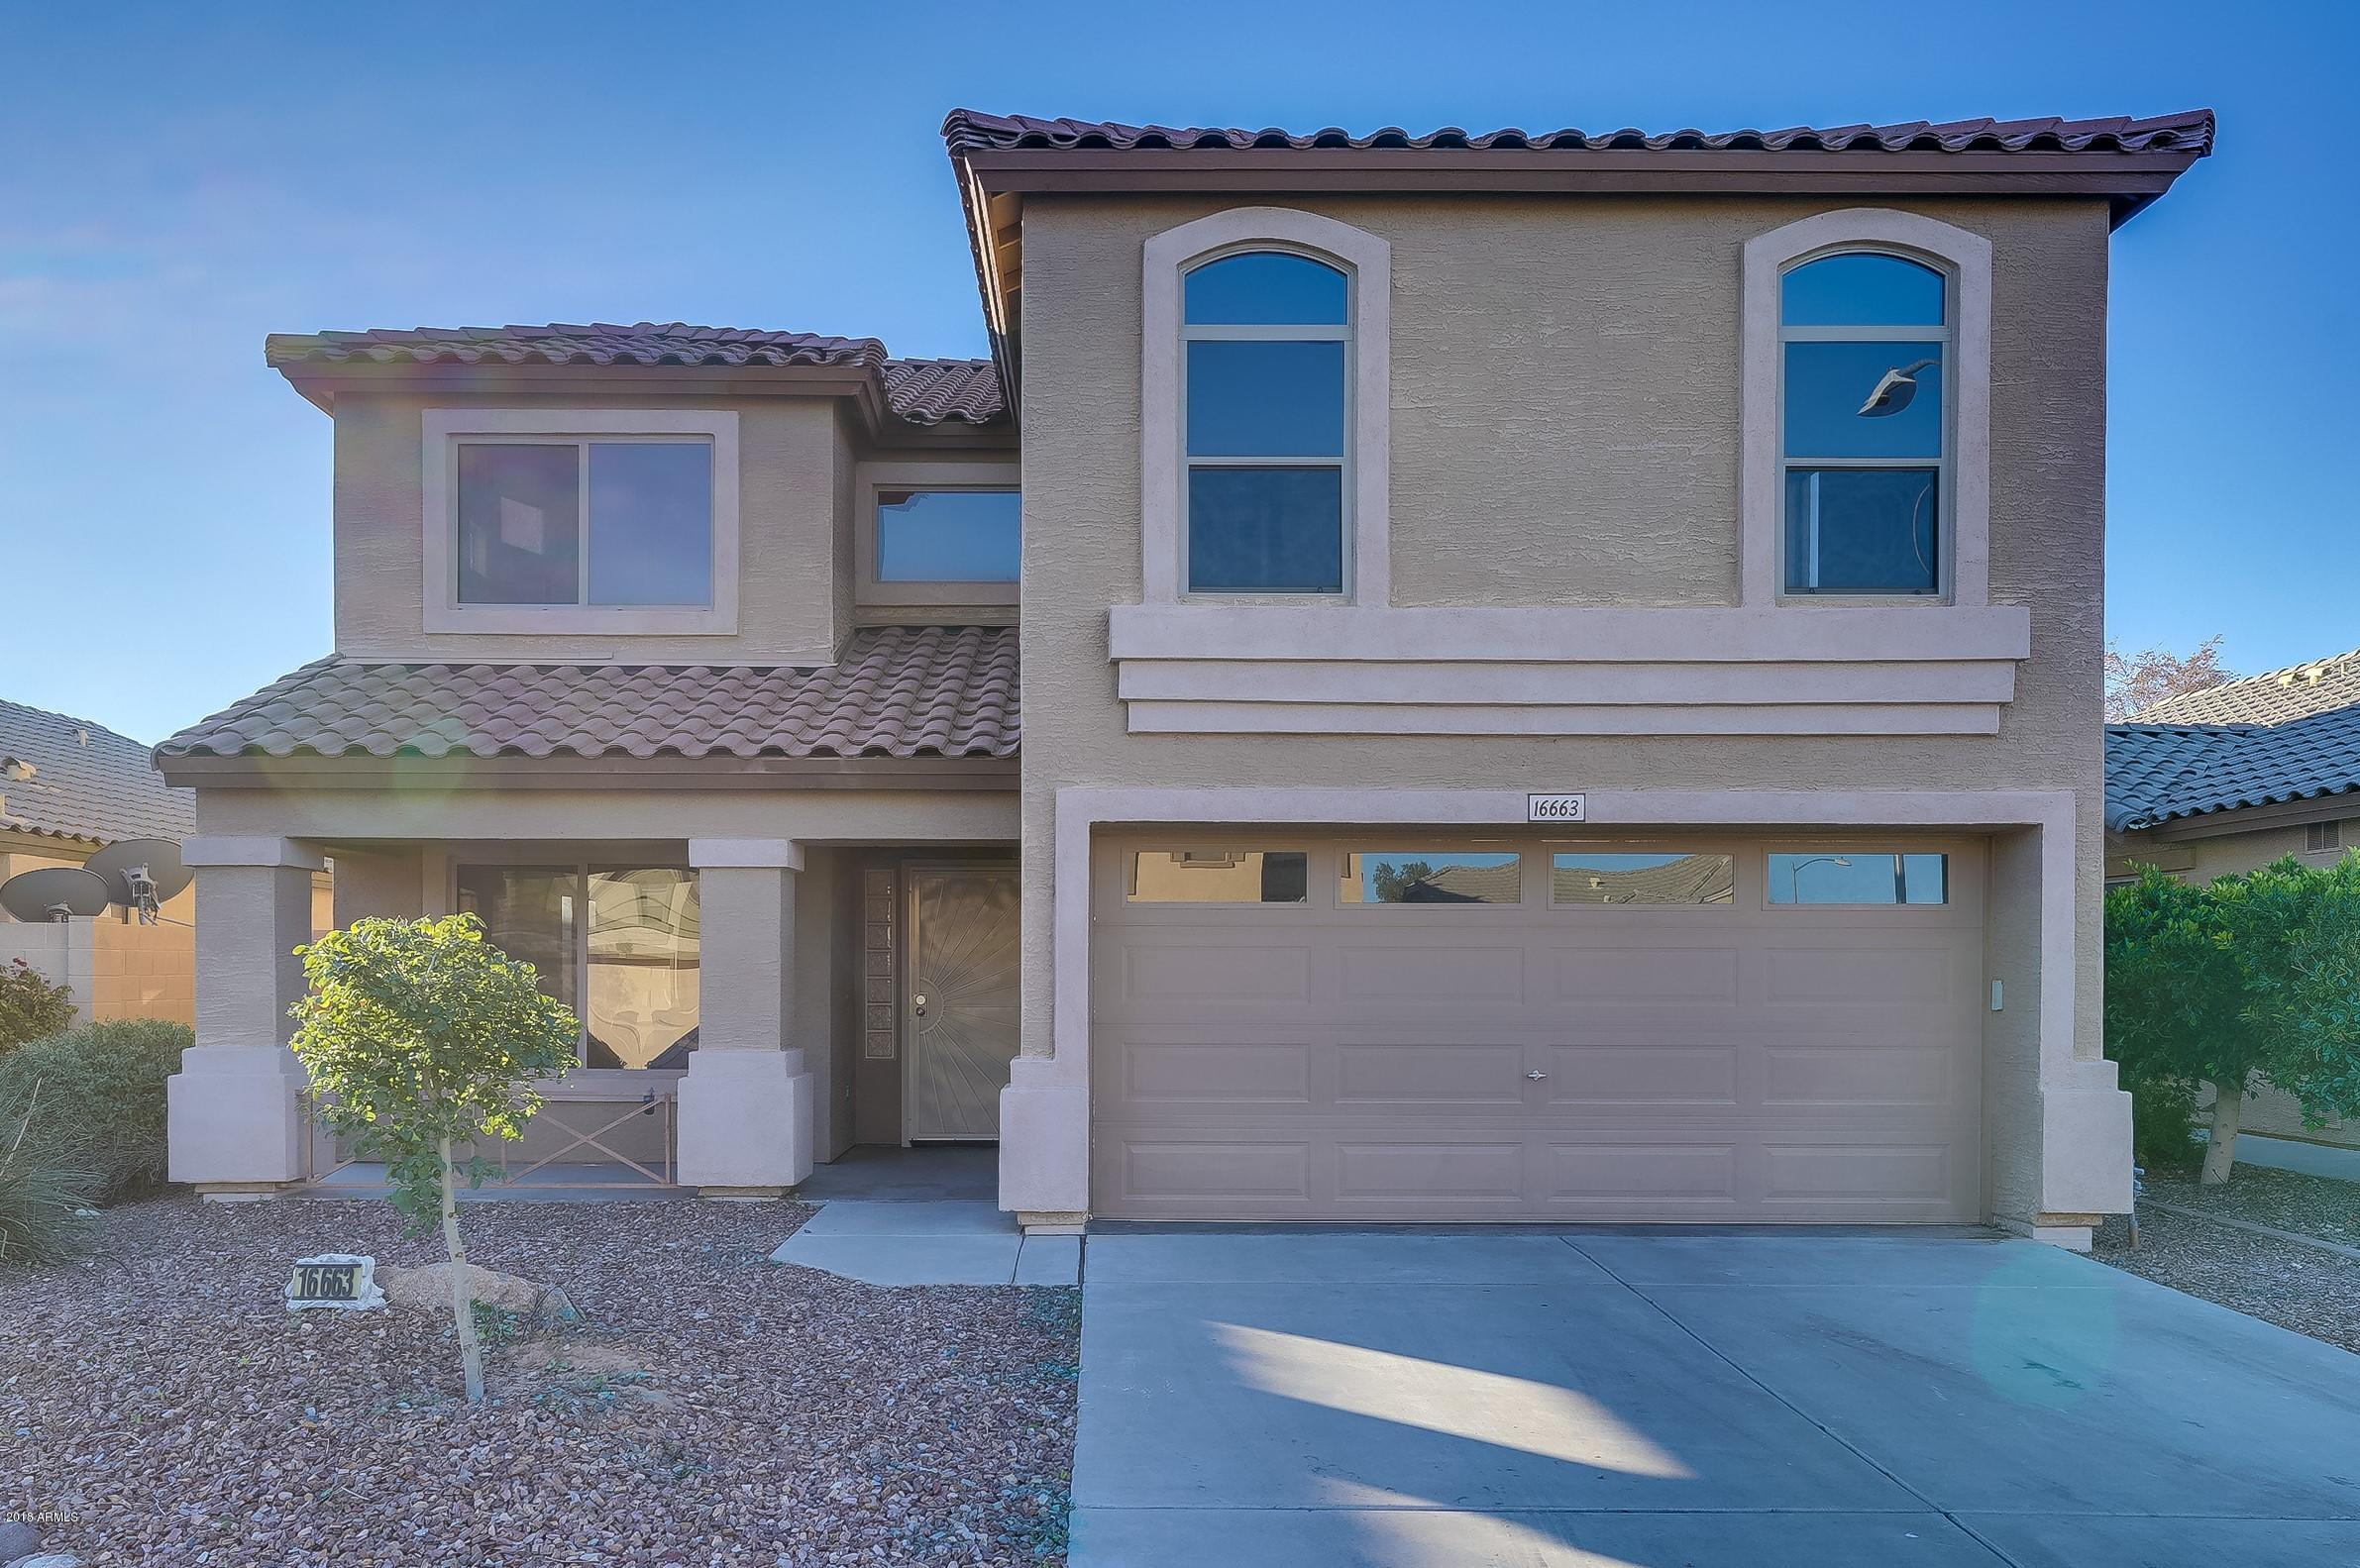 Photo of 16663 W RIMROCK Street, Surprise, AZ 85388